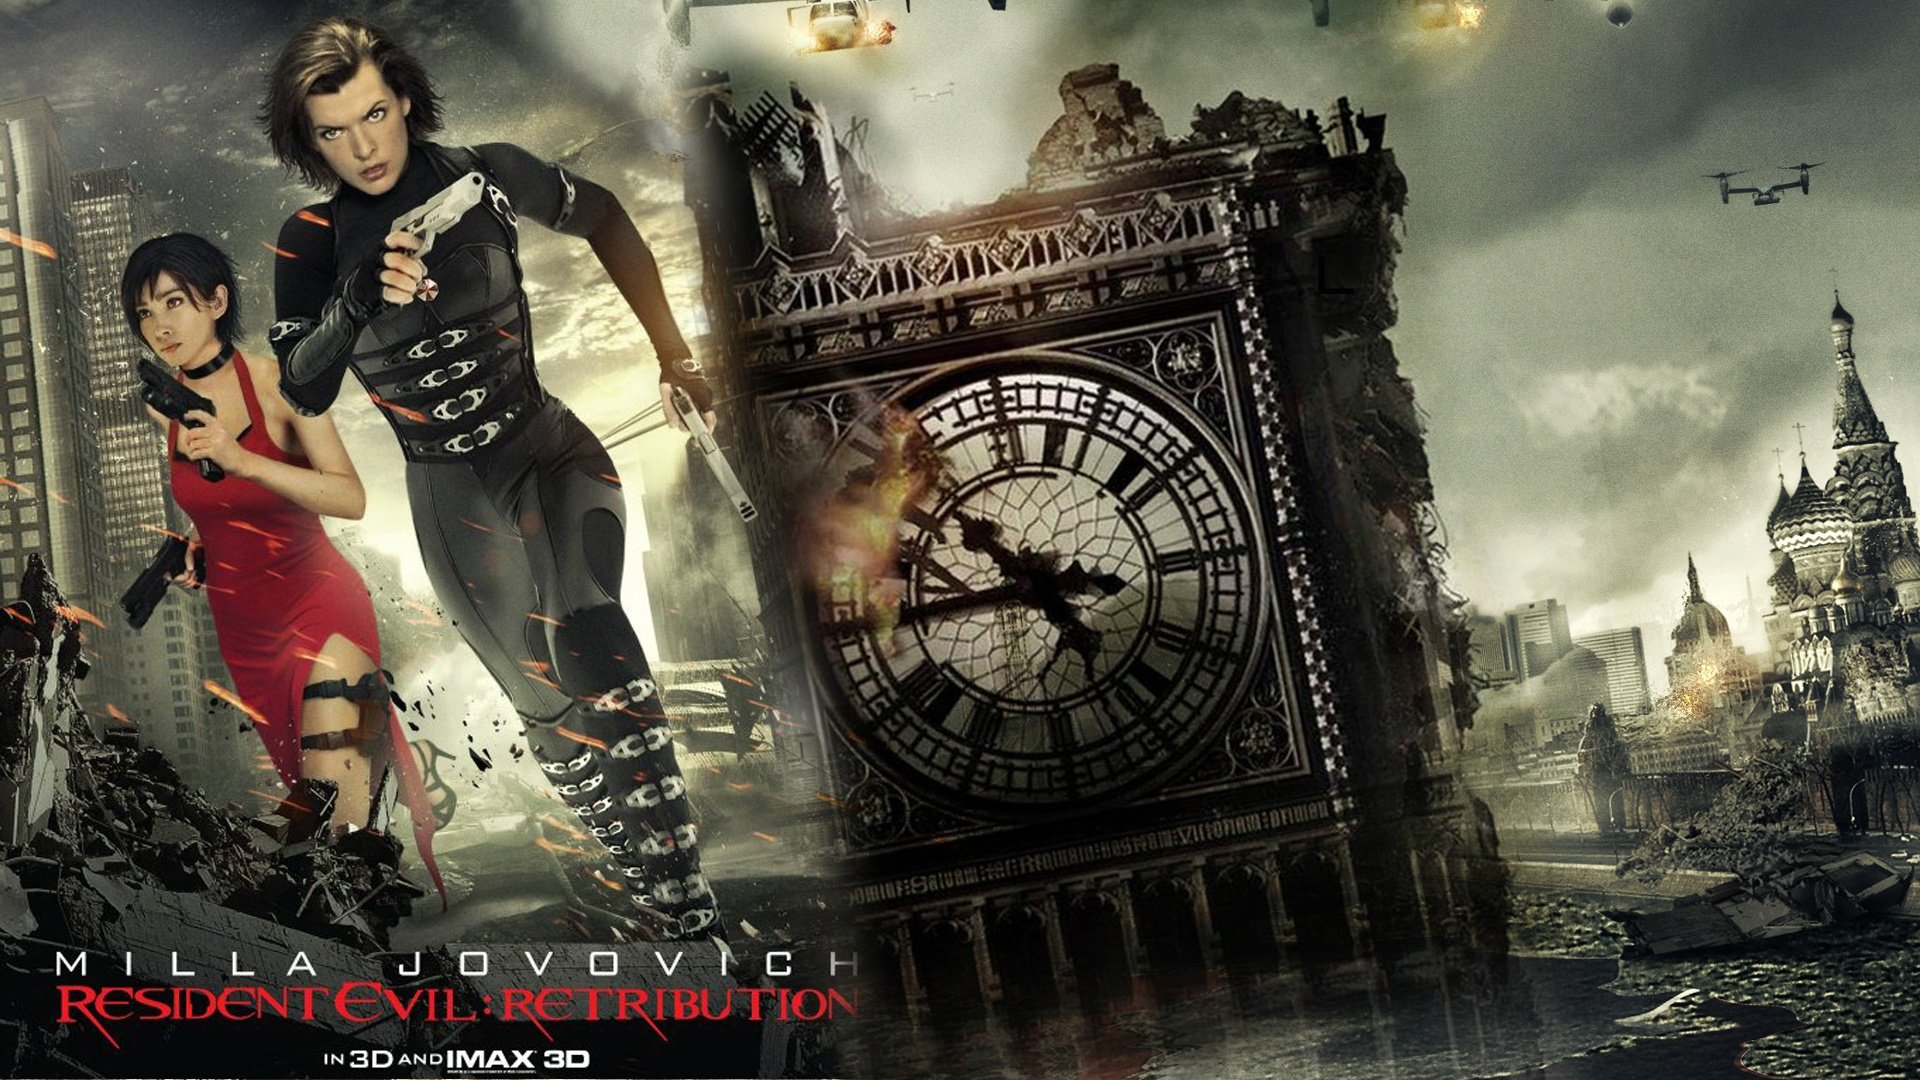 Resident Evil 5 Movie Trailers Photos And Wallpapers Mouthshut Com